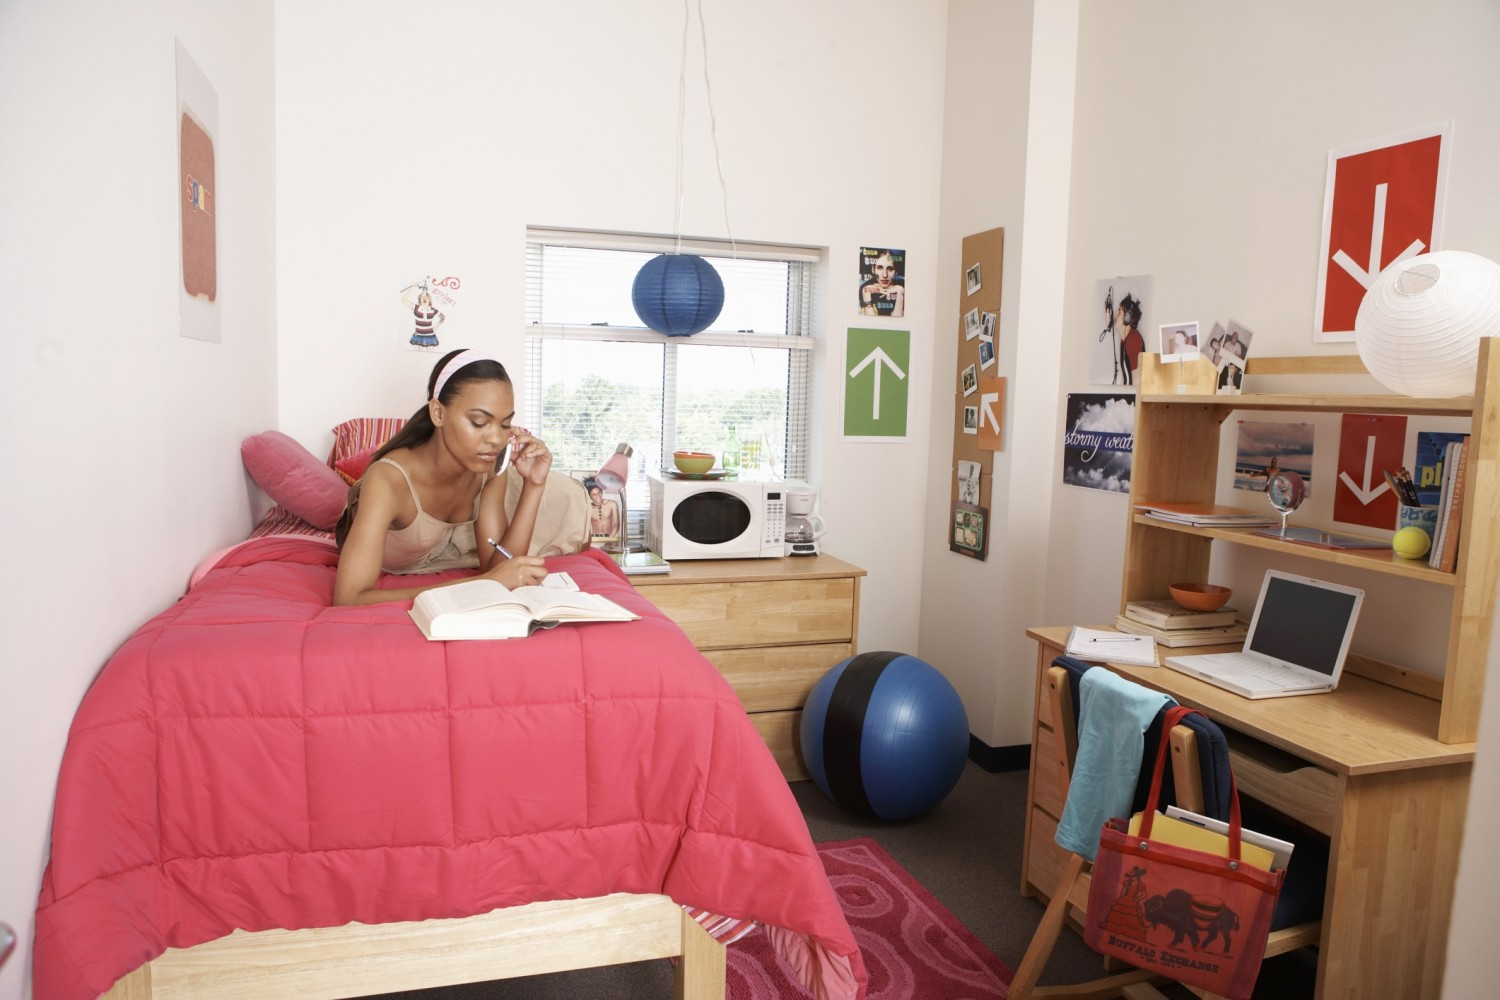 Living Room Do S And Don Ts: 5 College Dorm Room Dos And Don'ts